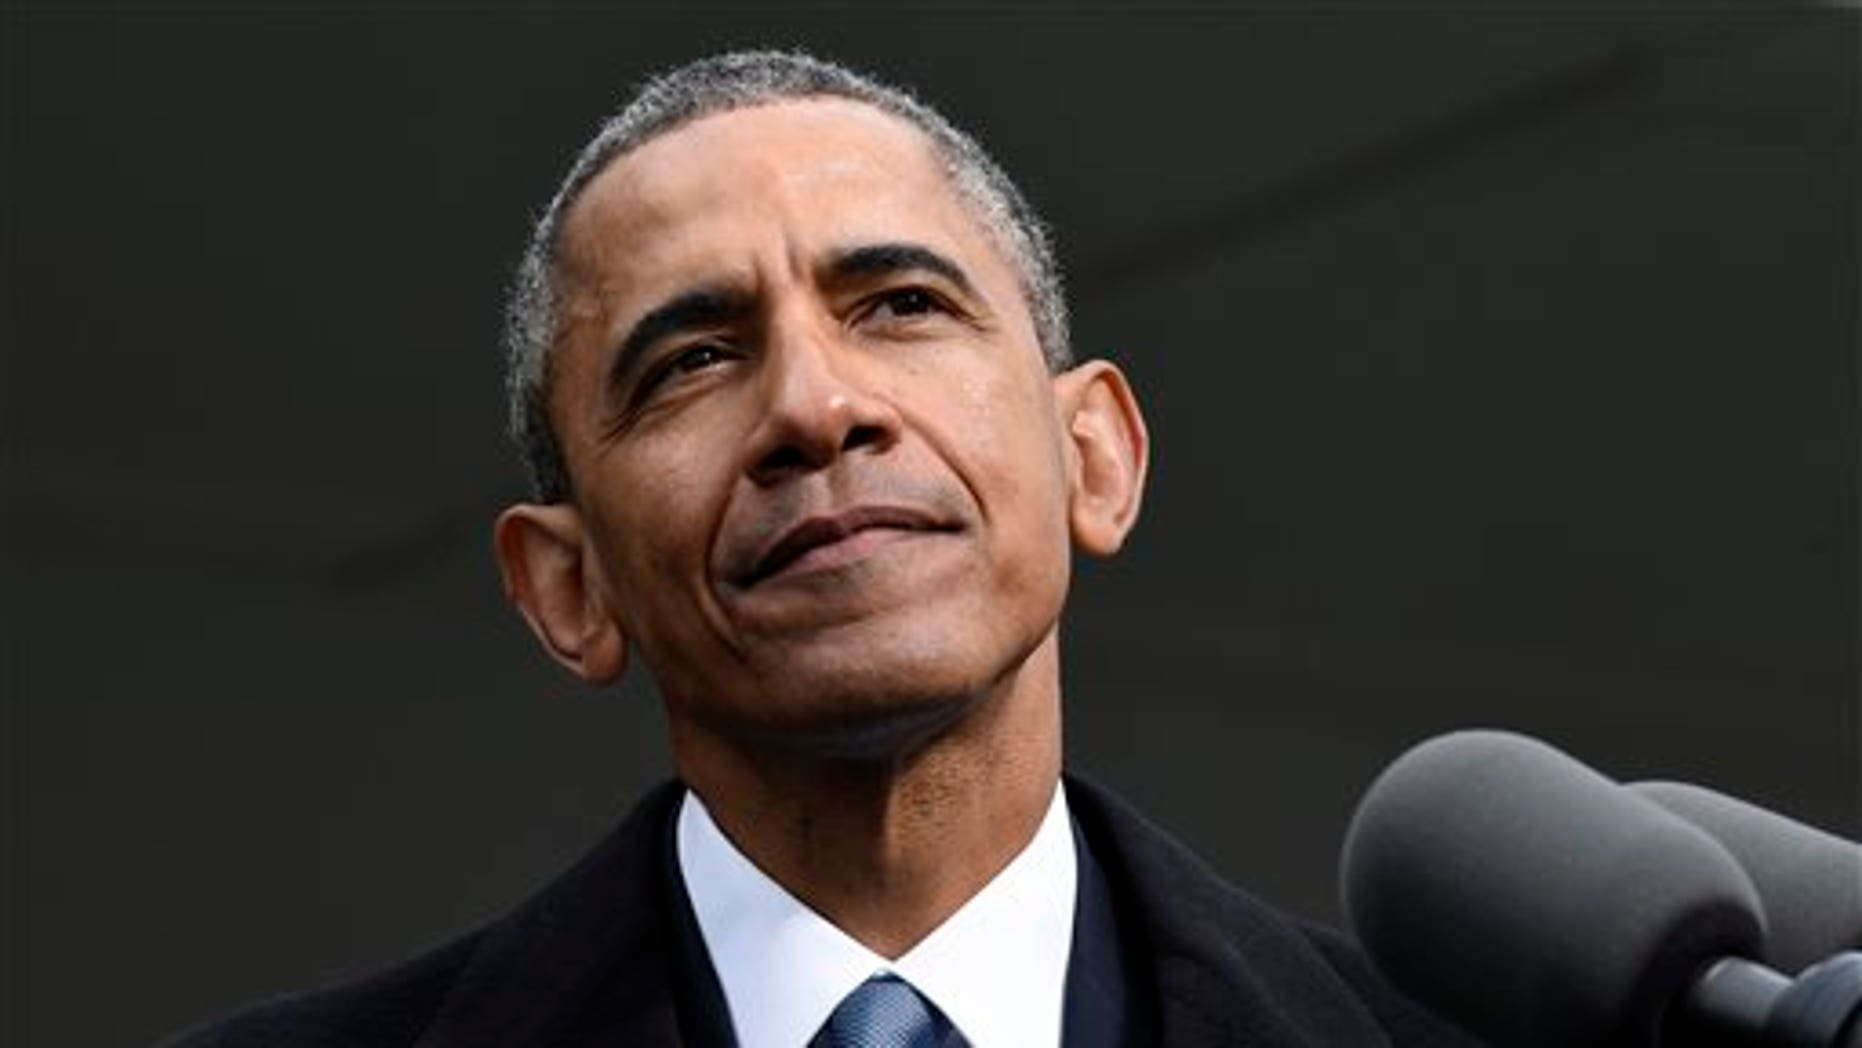 President Obama speaks at dedication of the Edward M. Kennedy Institute for the United States Senate in Boston, Monday, March 30, 2015. (AP Photo/Susan Walsh)